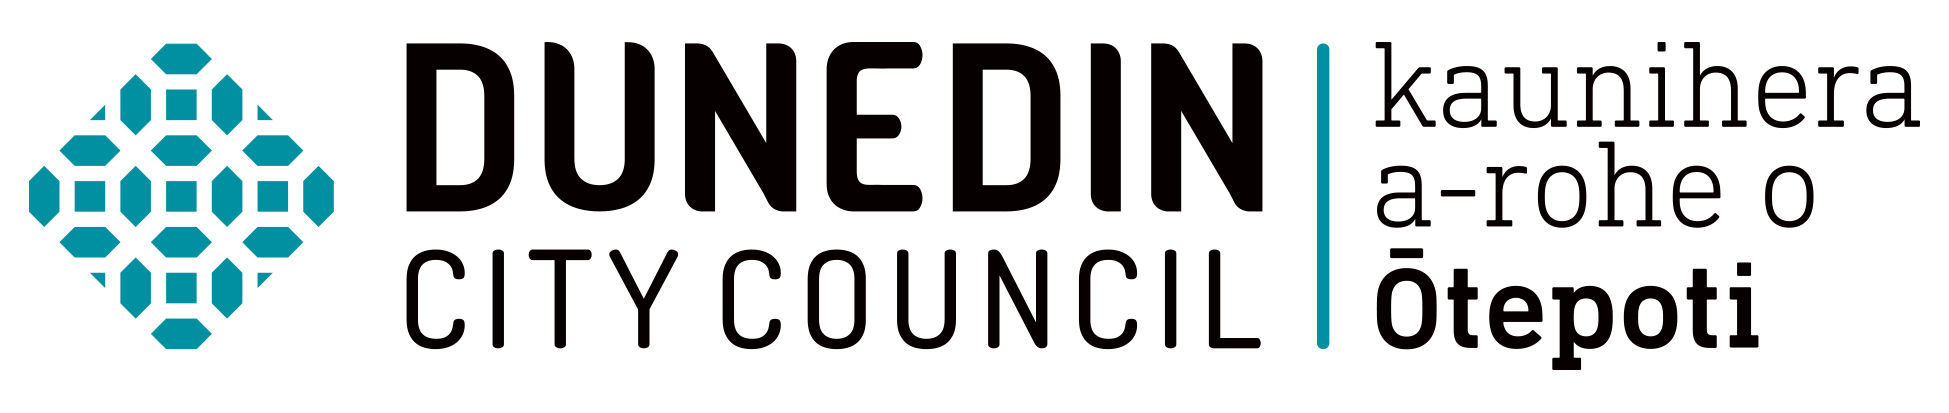 Dunedin City Council logo